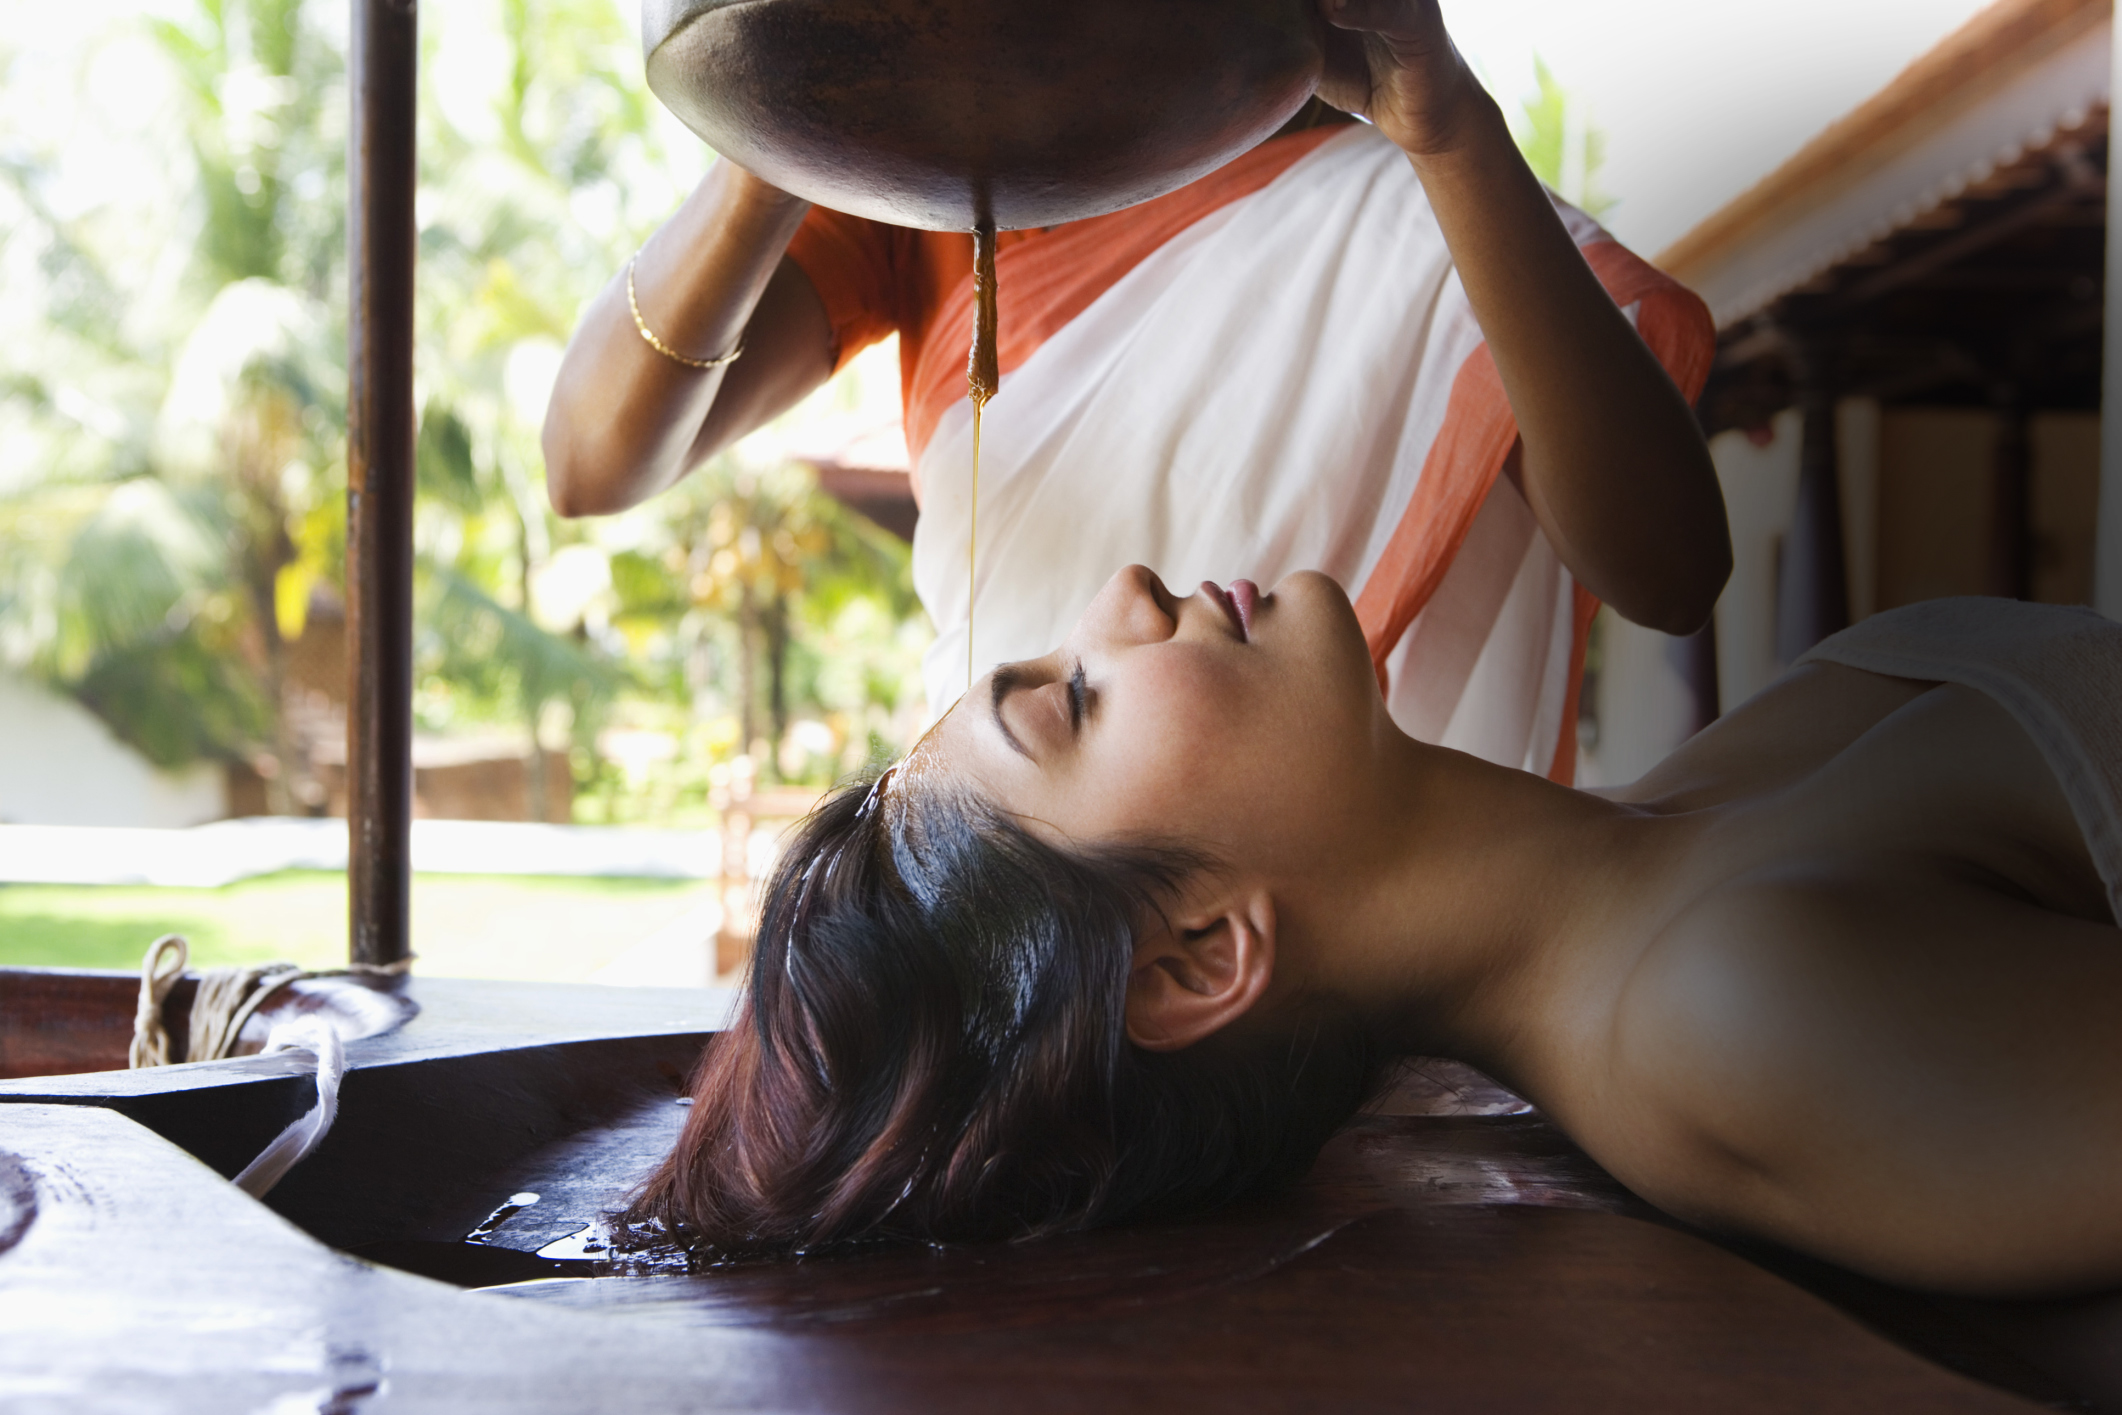 Panchakarma and Yoga Therapy